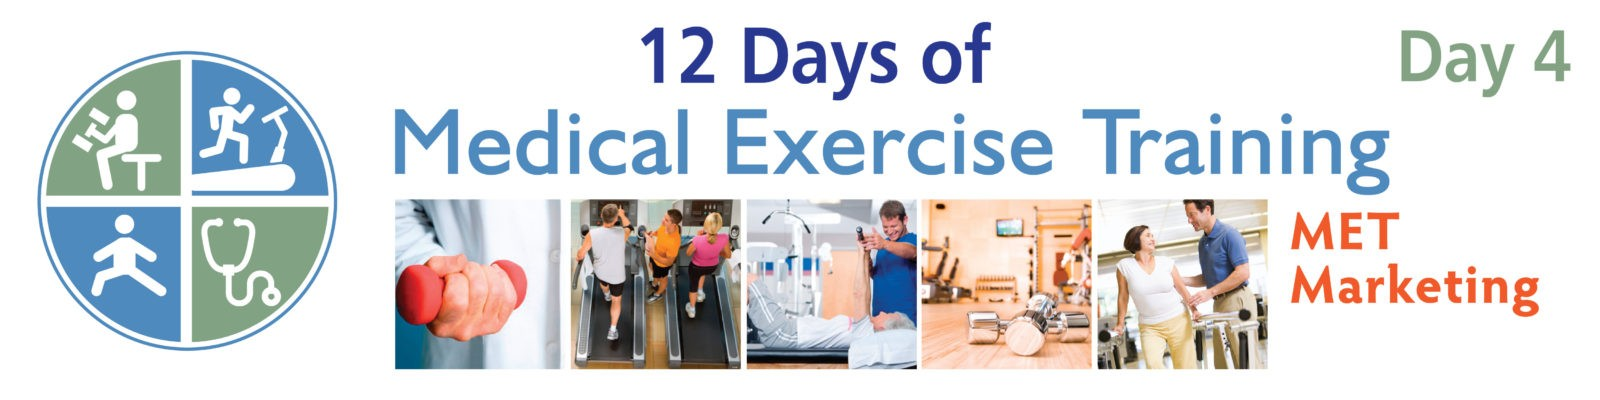 Medical Exercise Specialist Jobs Near Me - ExerciseWalls